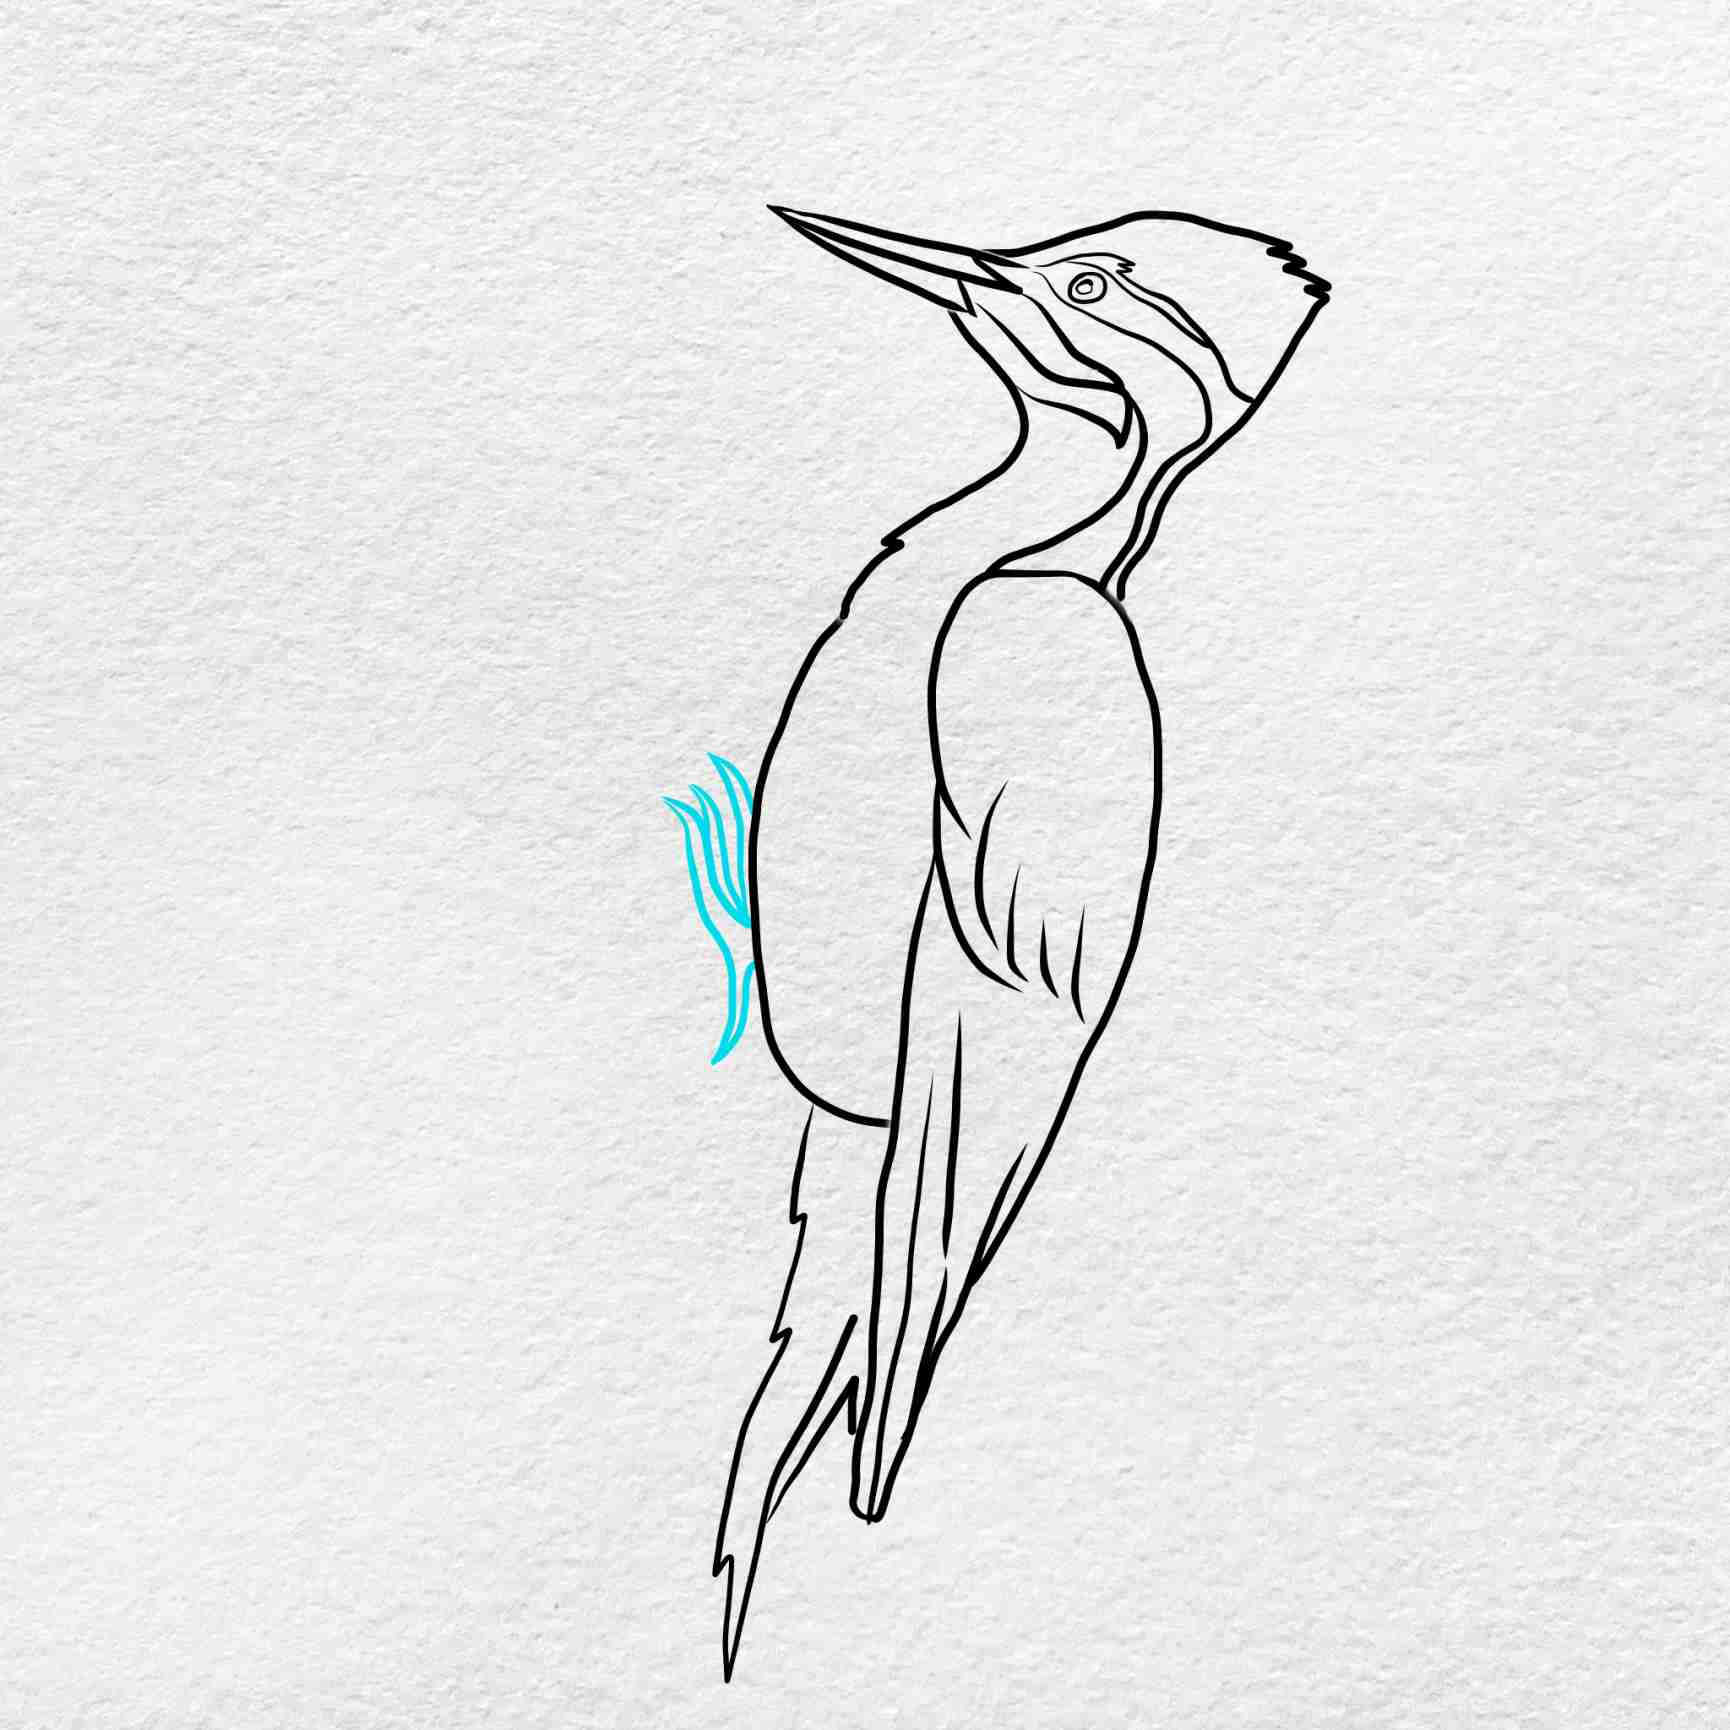 How To Draw A Woodpecker: Step 7